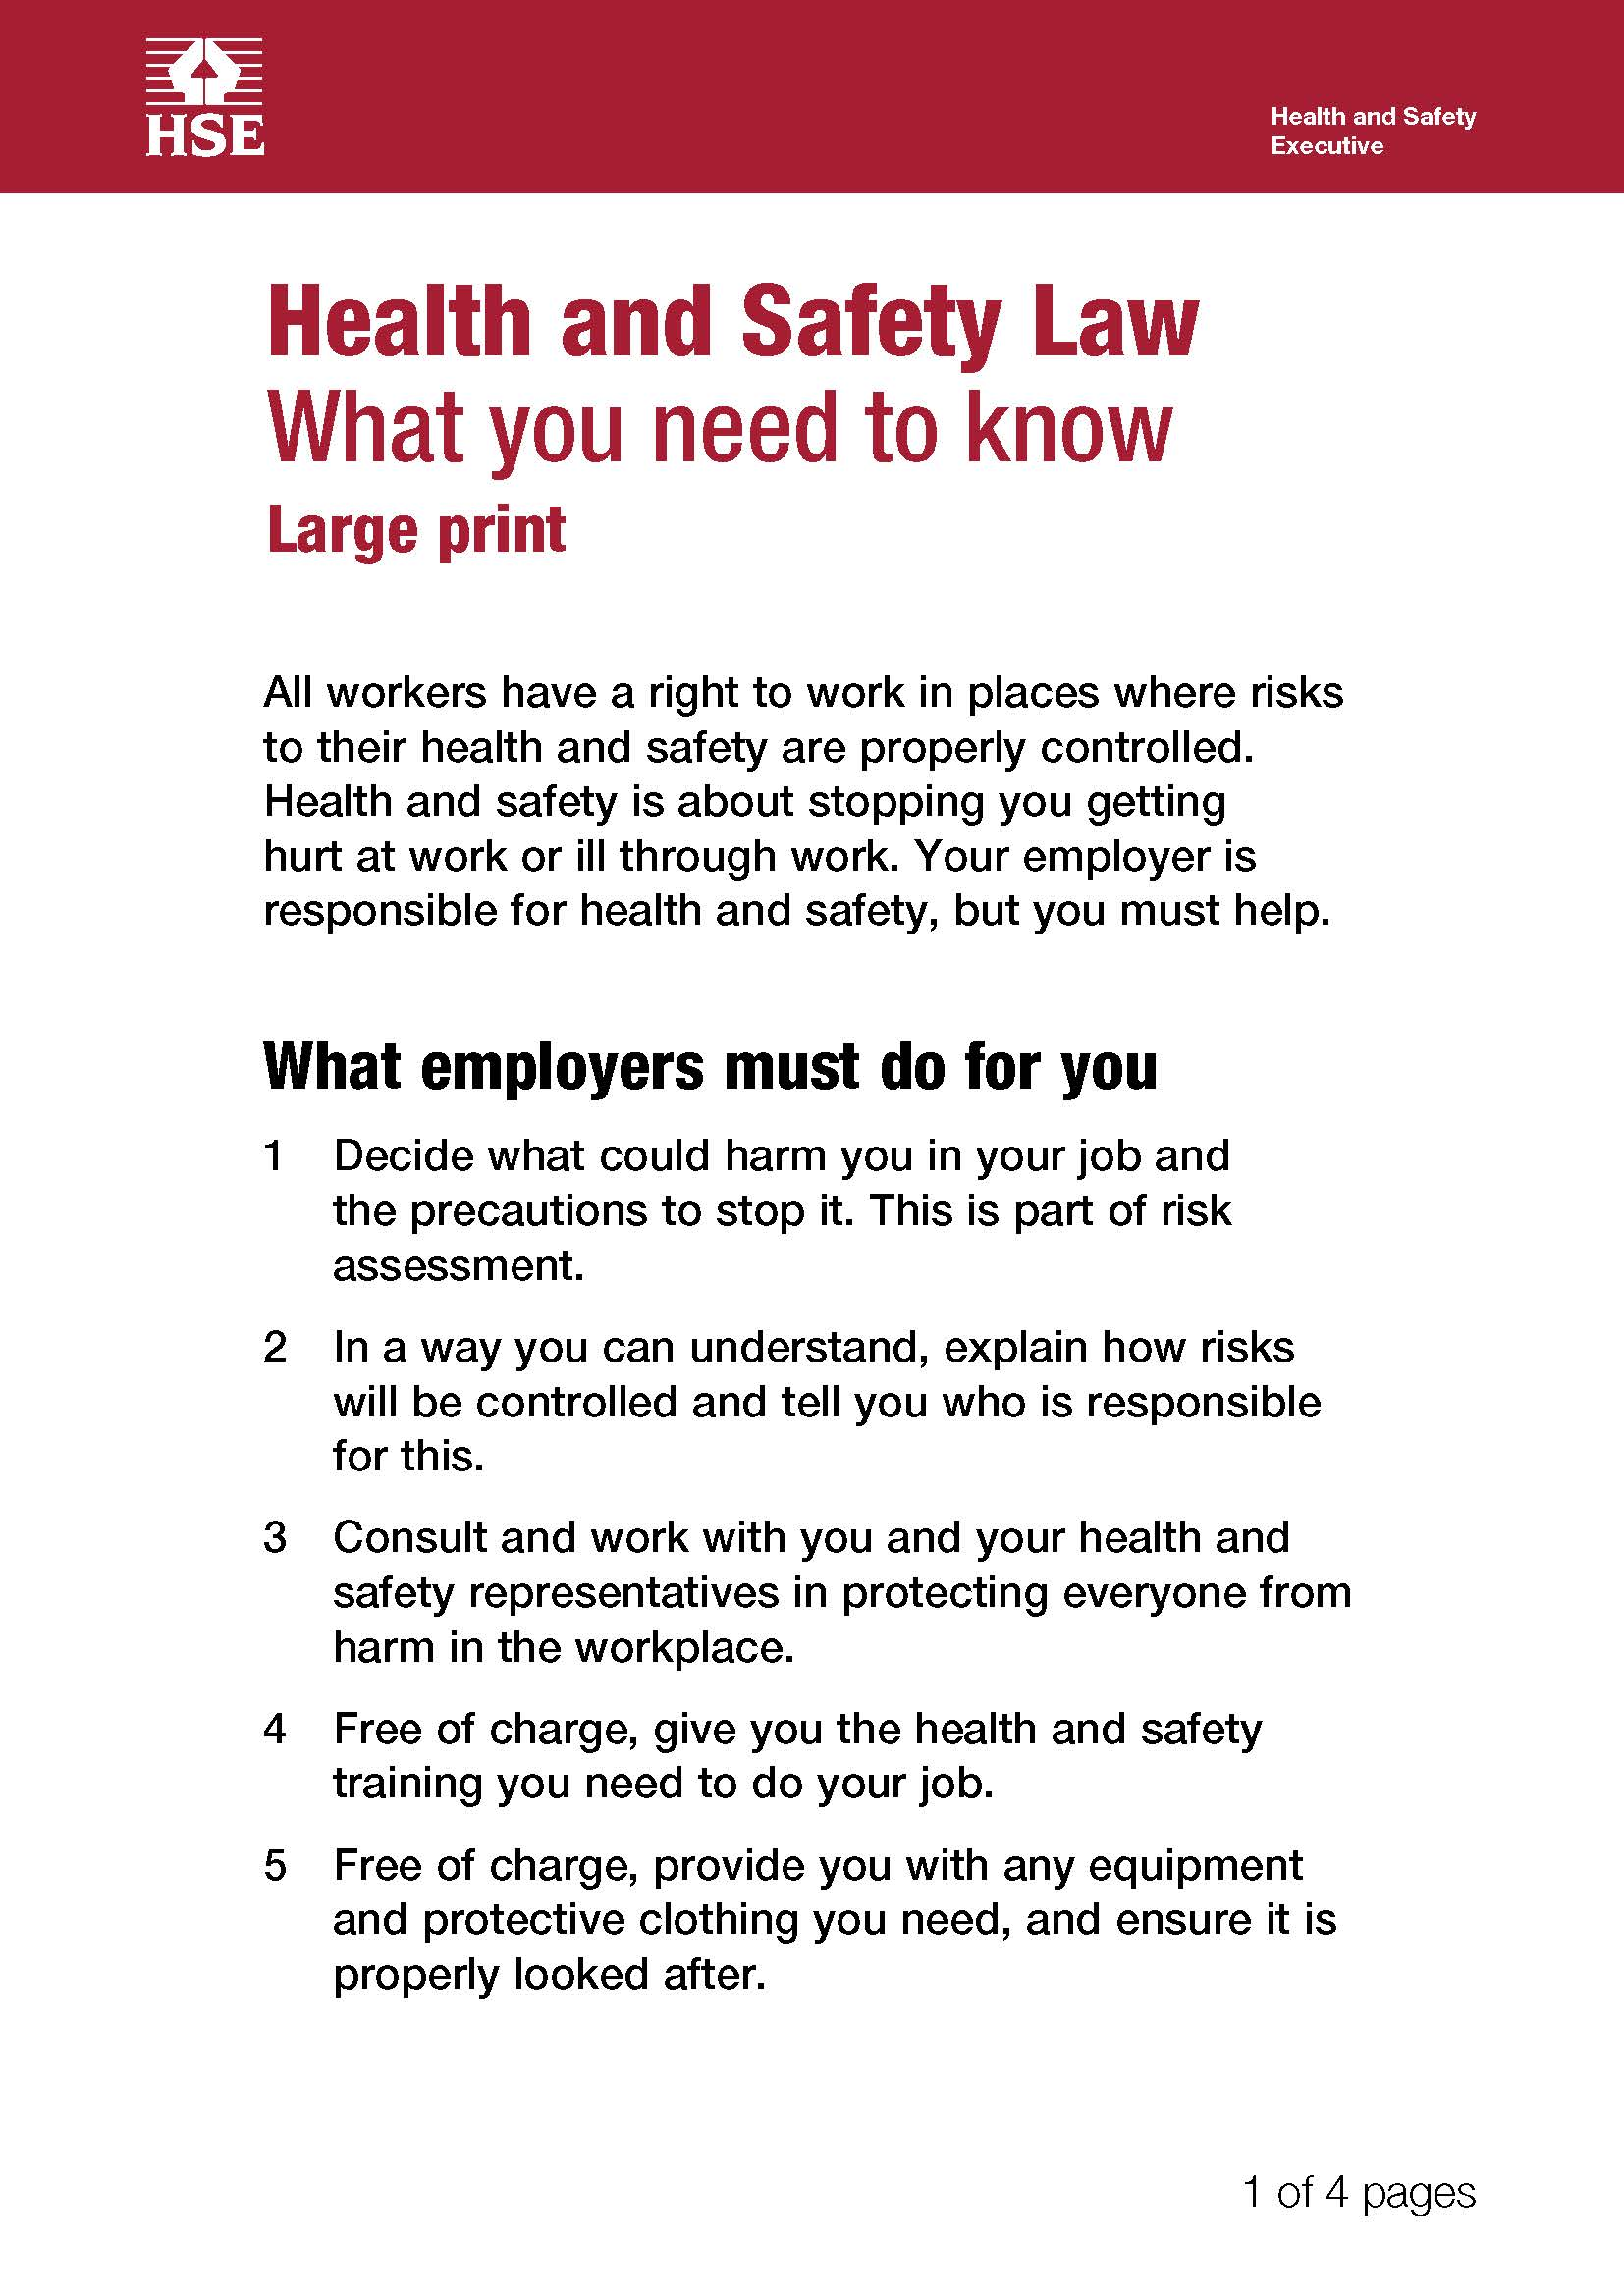 image shows Health and Safety legislation poster